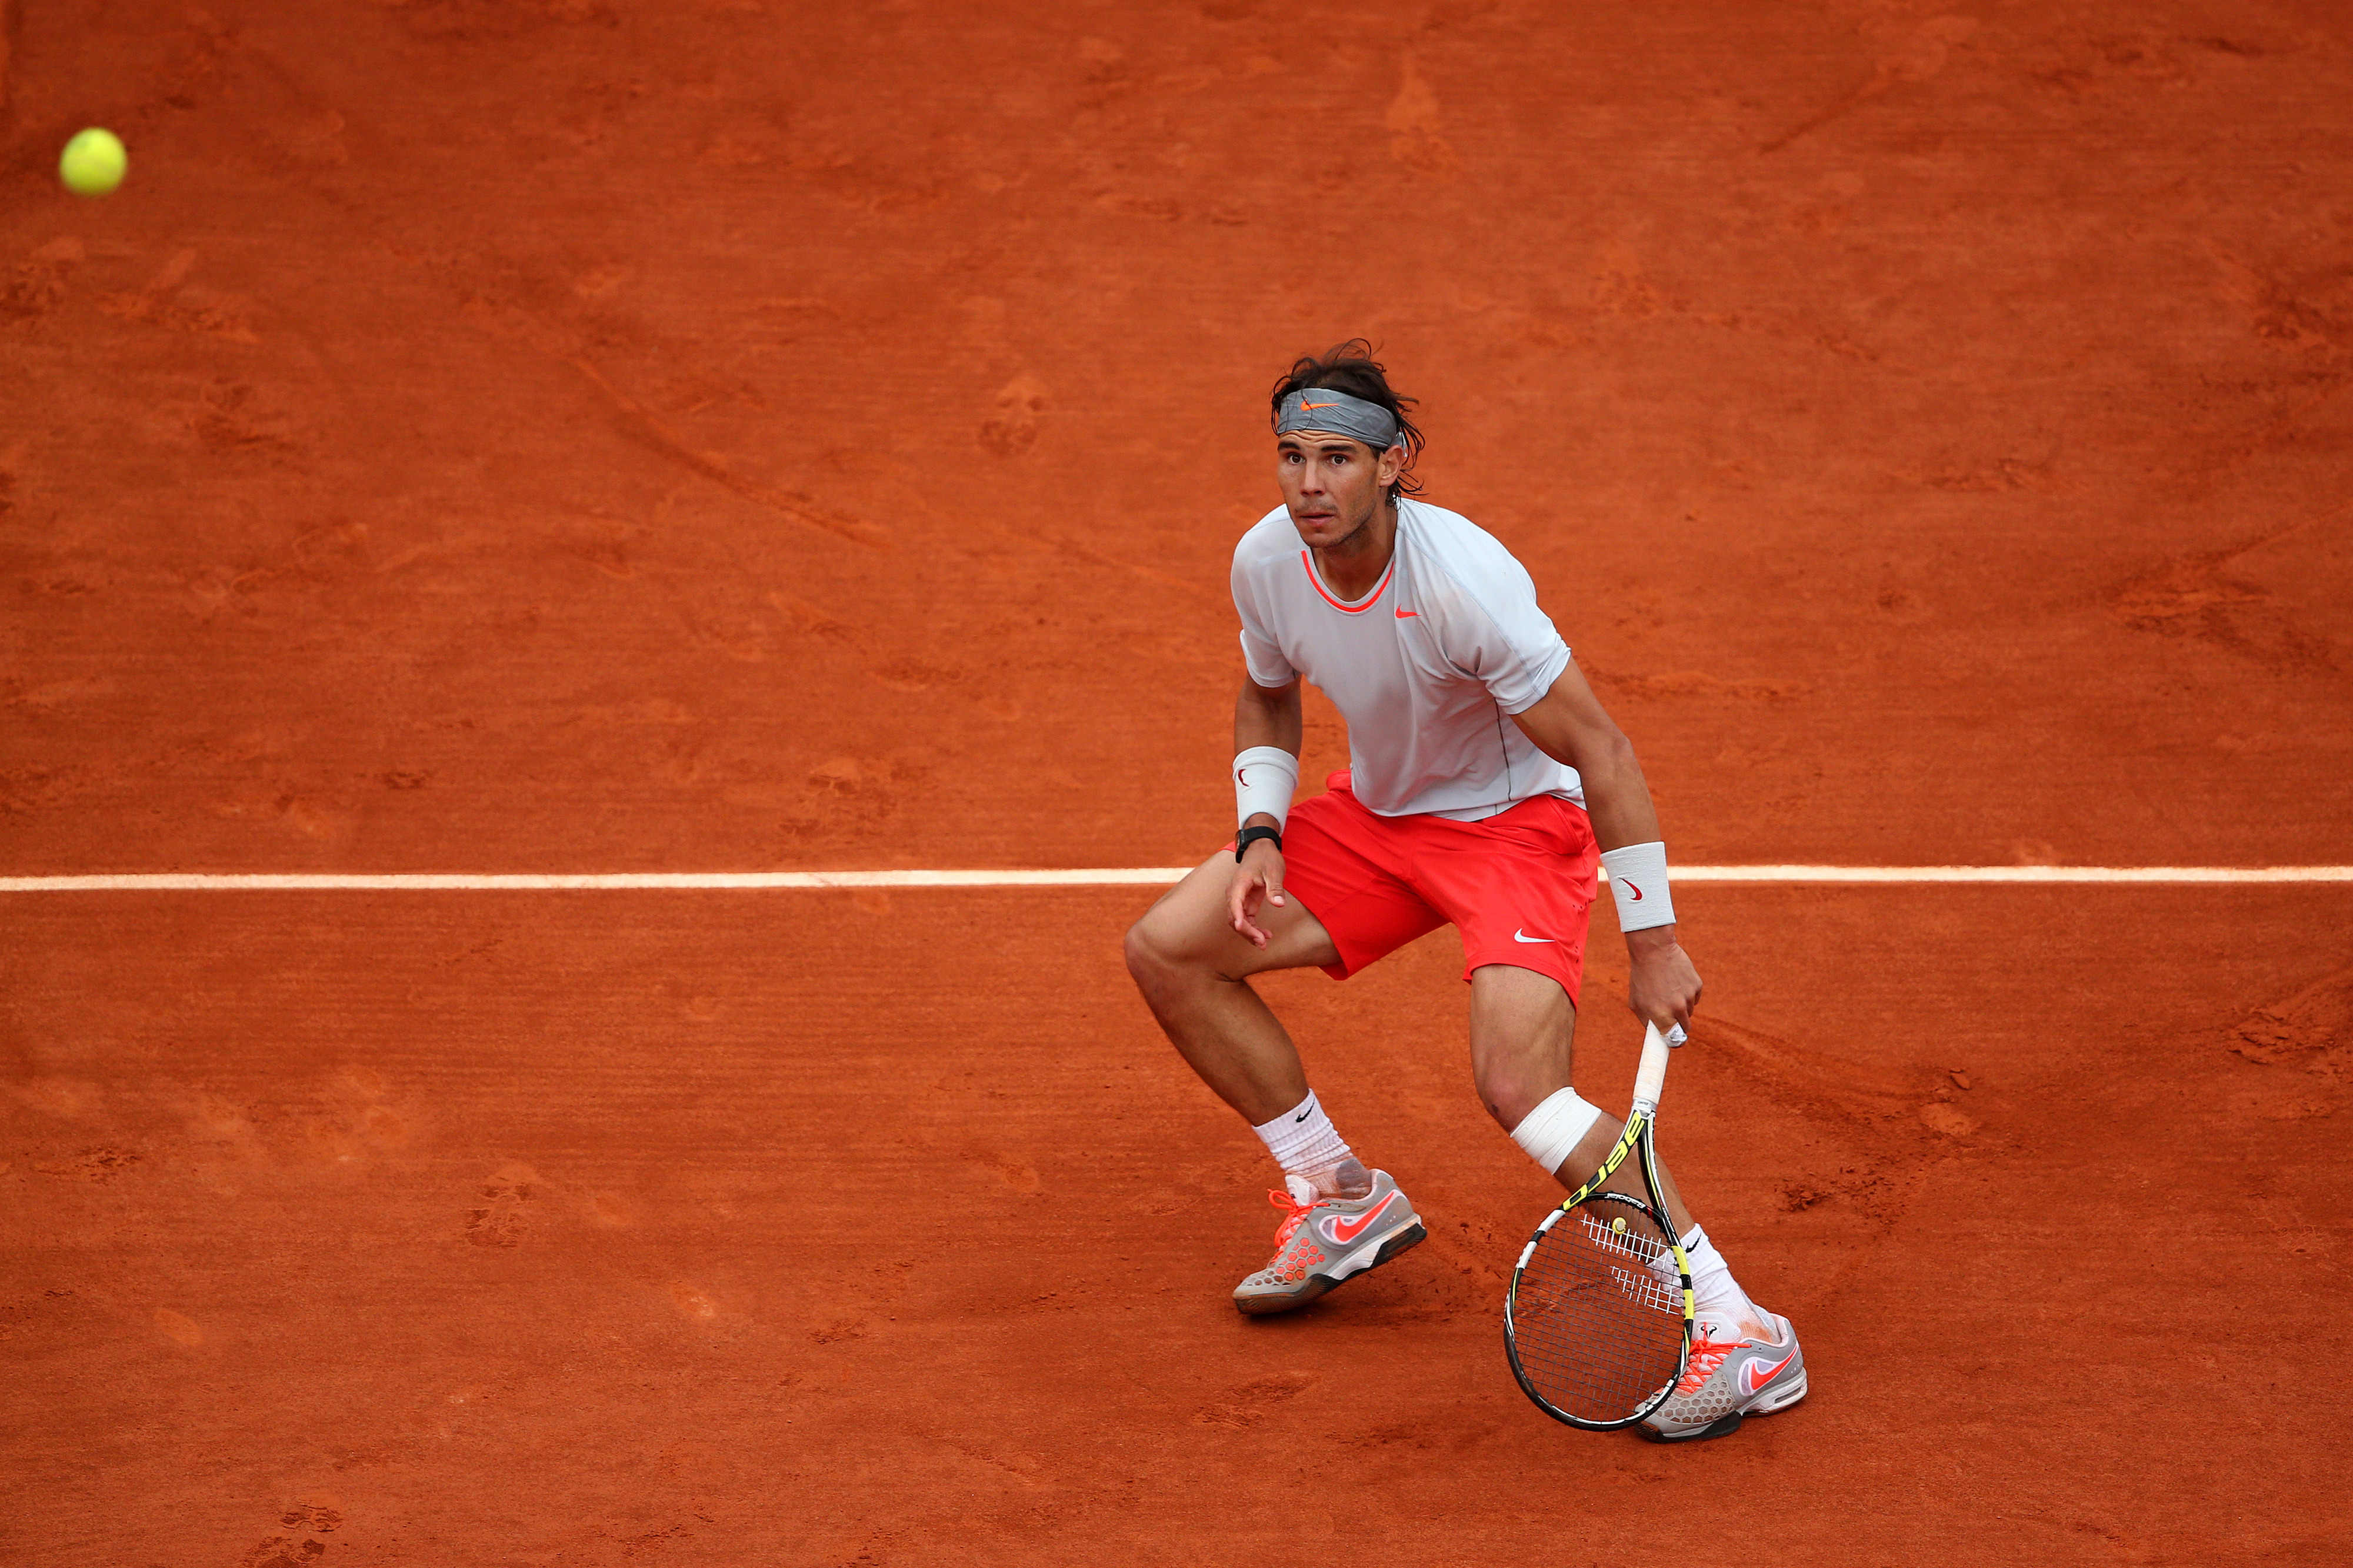 2013 French Open: Rafael Nadal, his wrists, and his reign